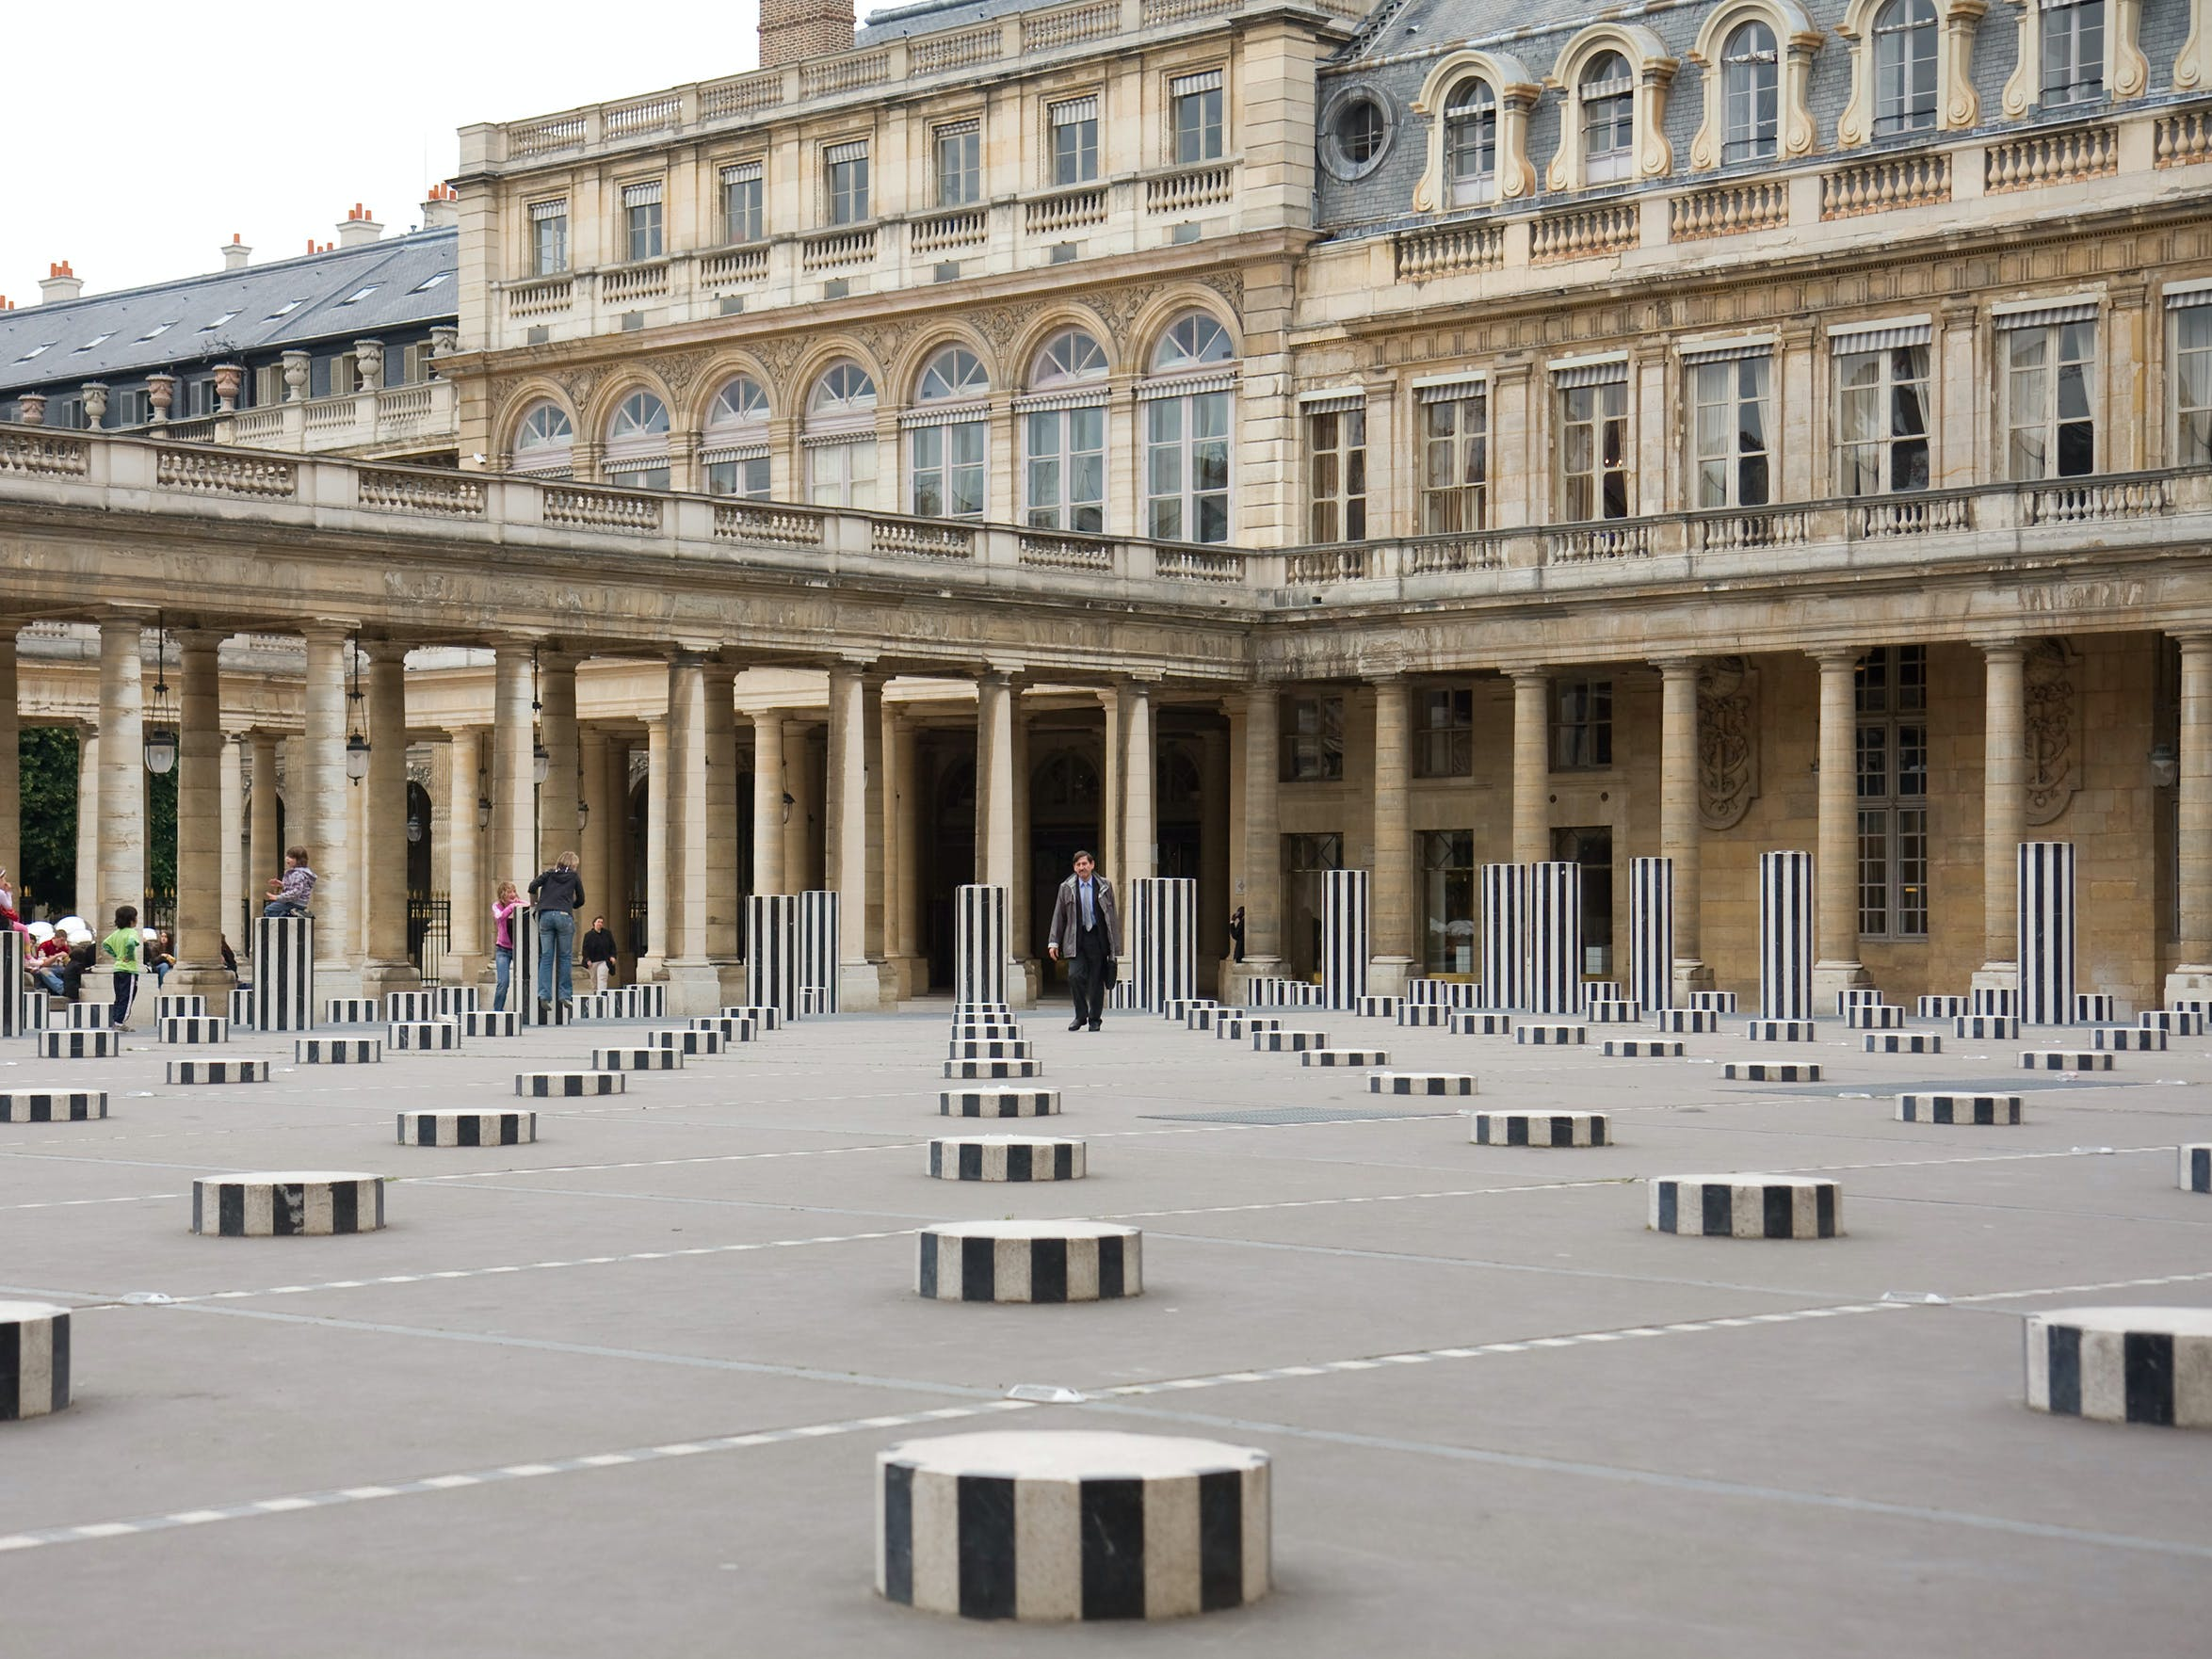 city invented, haussmann and the making of modern paris: walking tour-1